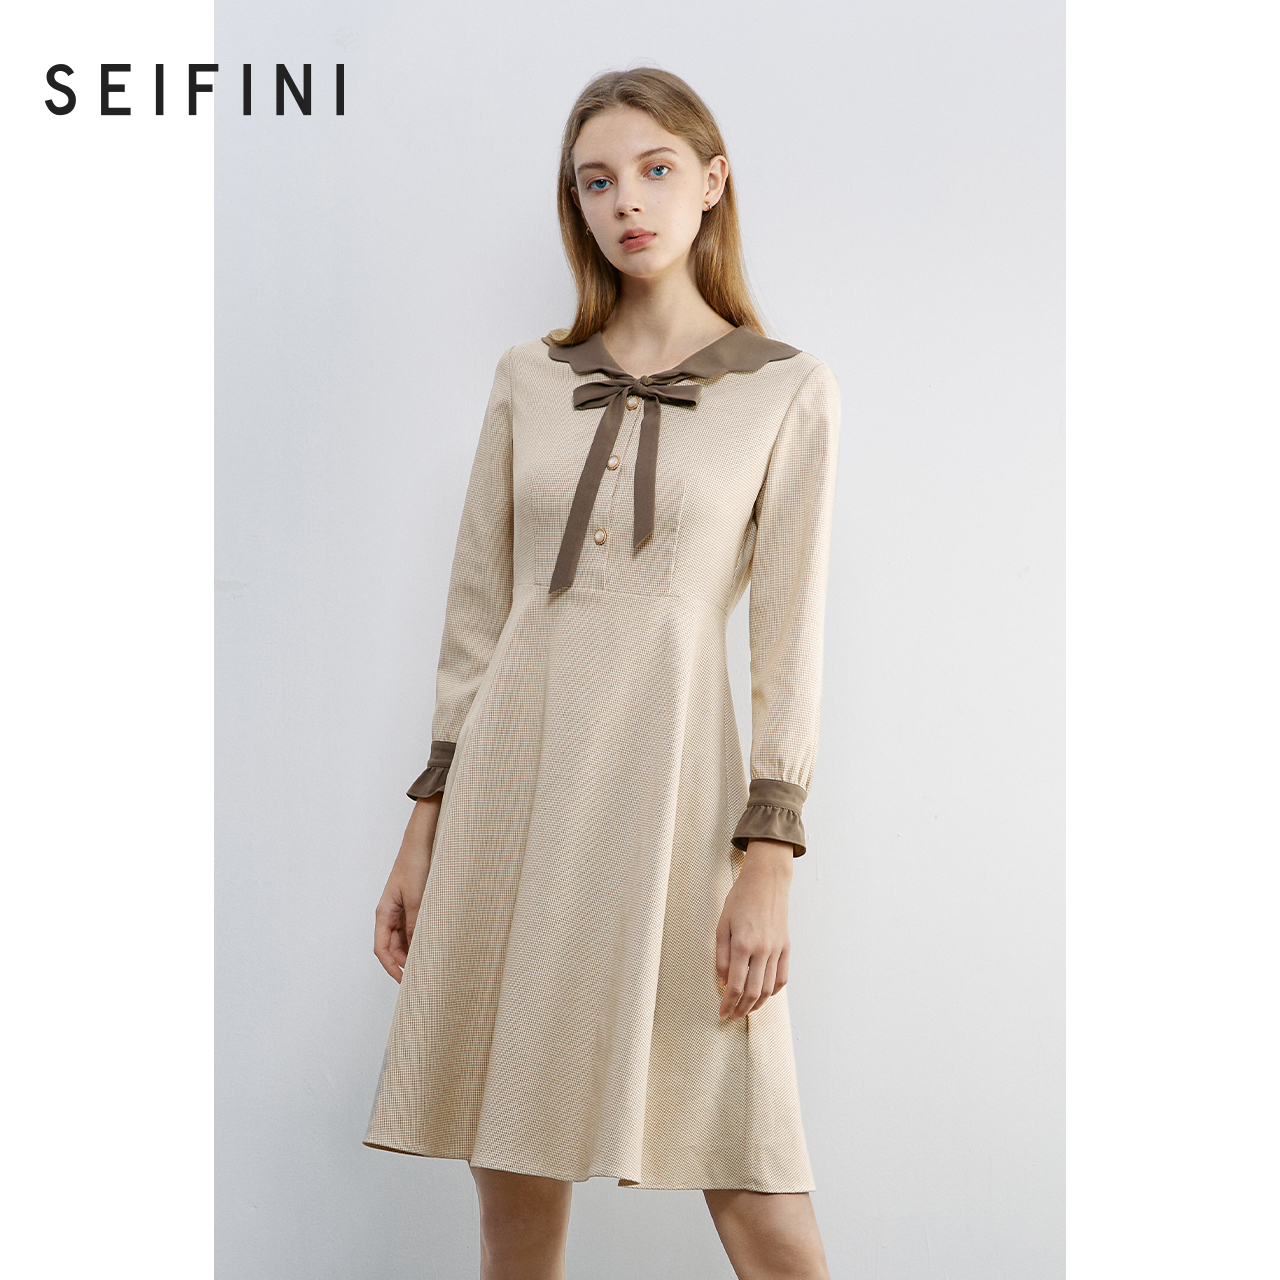 Shopping mall same style poetry Fanli dress women 2020 new autumn plaid British style skirt 3B9192081